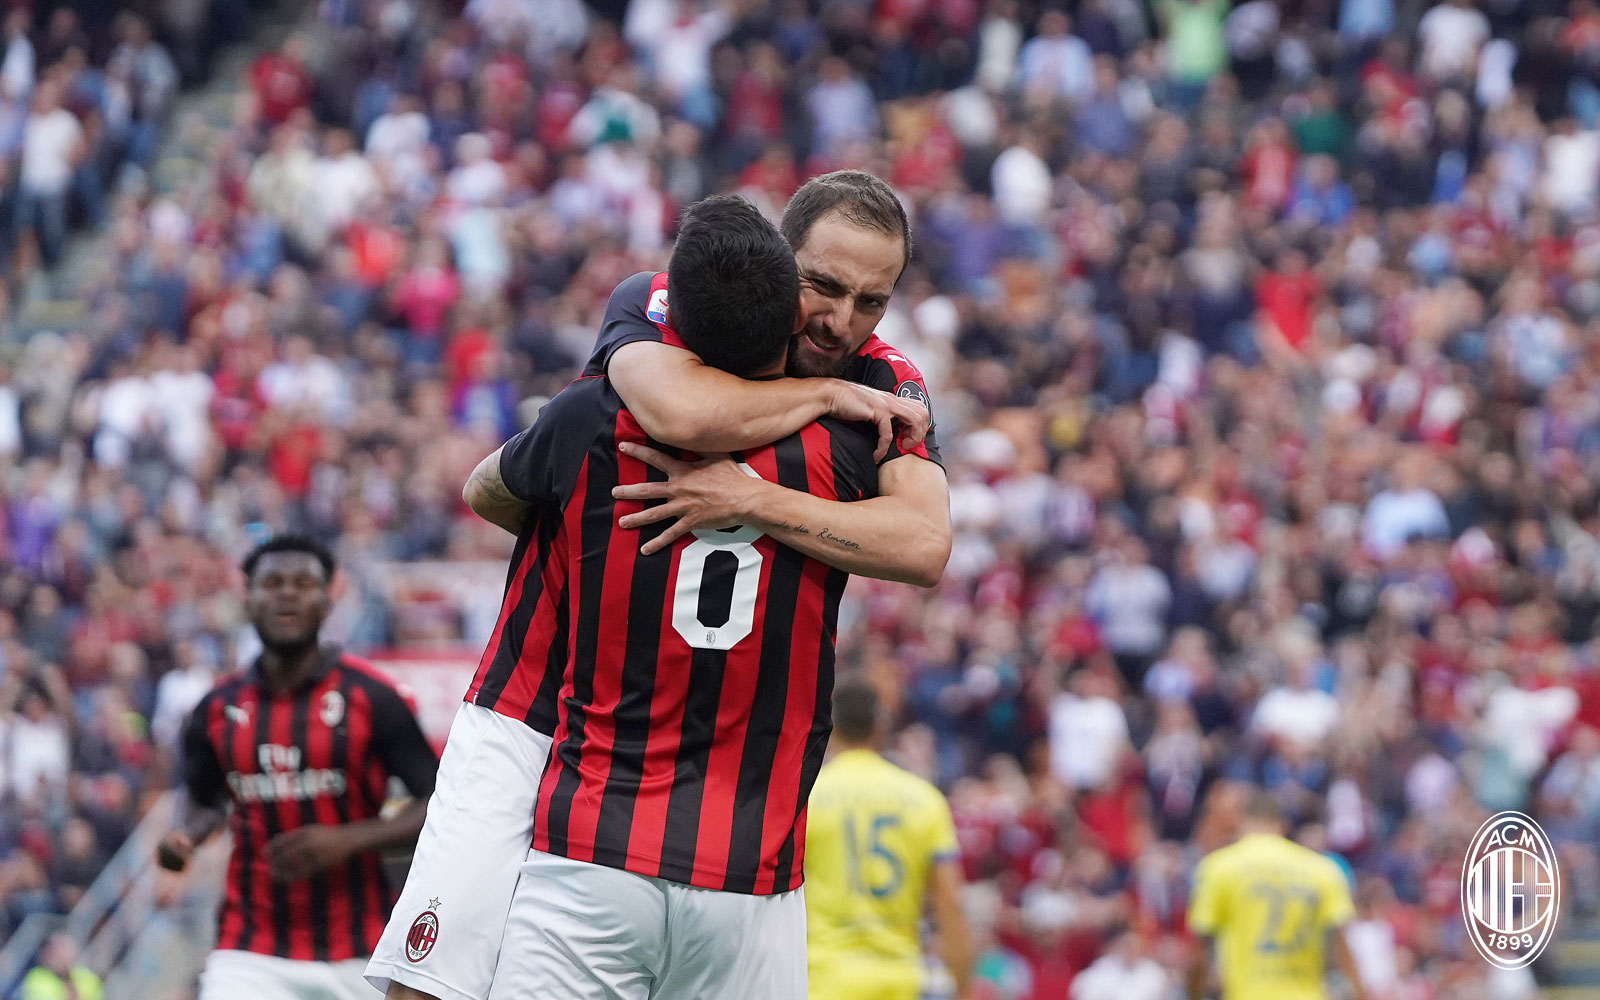 Gonzalo Higuain and Suso celebrating during Milan-Chievo at Stadio San Siro on October 7, 2018. (@acmilan.com)